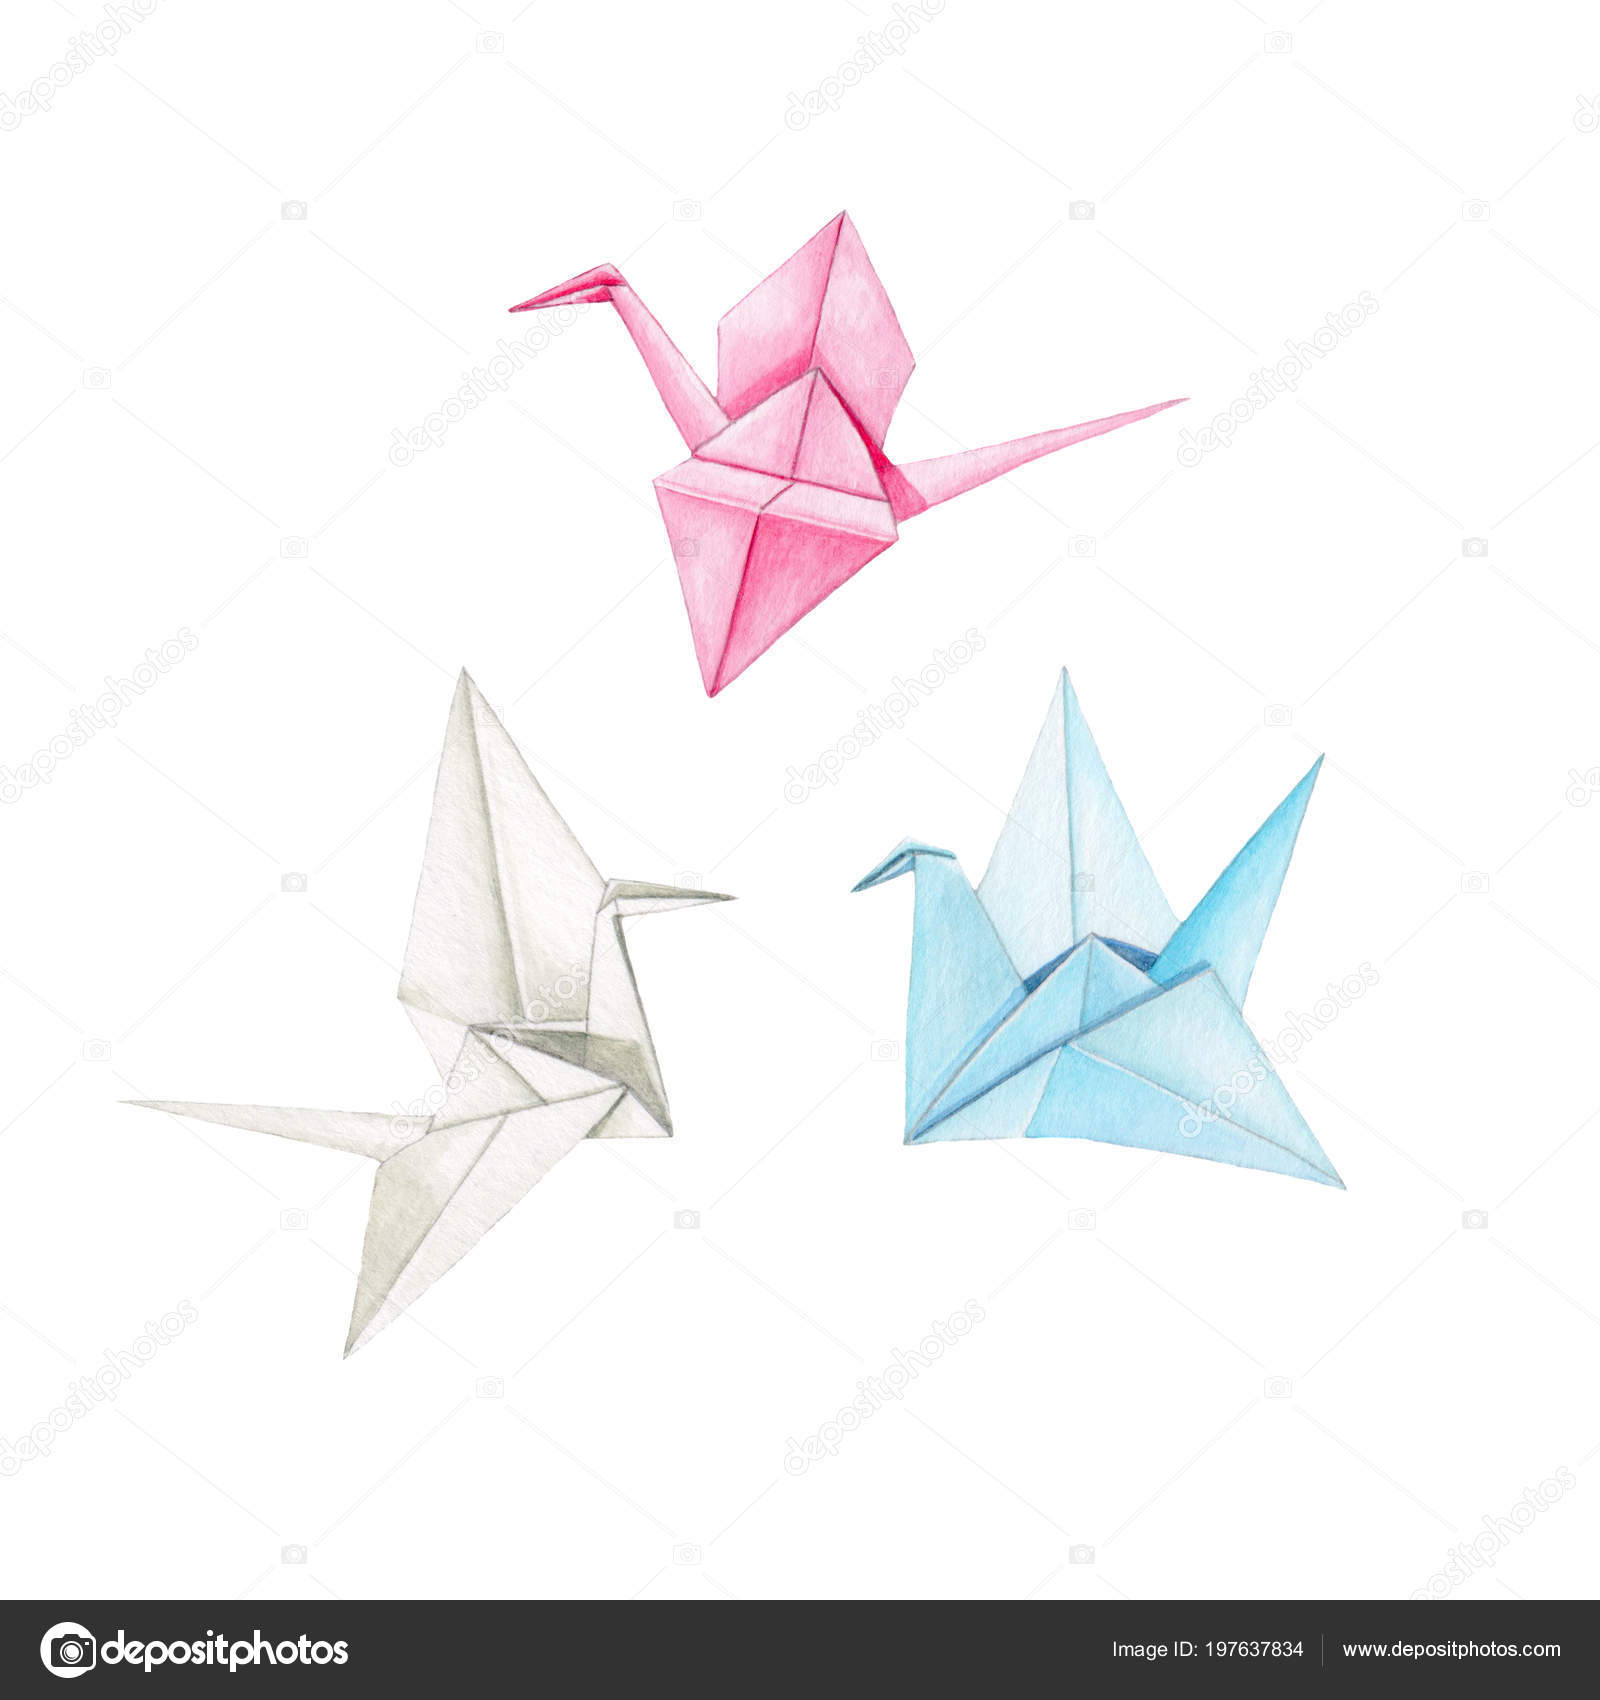 Origami Crane Stock Photo, Picture And Royalty Free Image. Image ... | 1700x1600